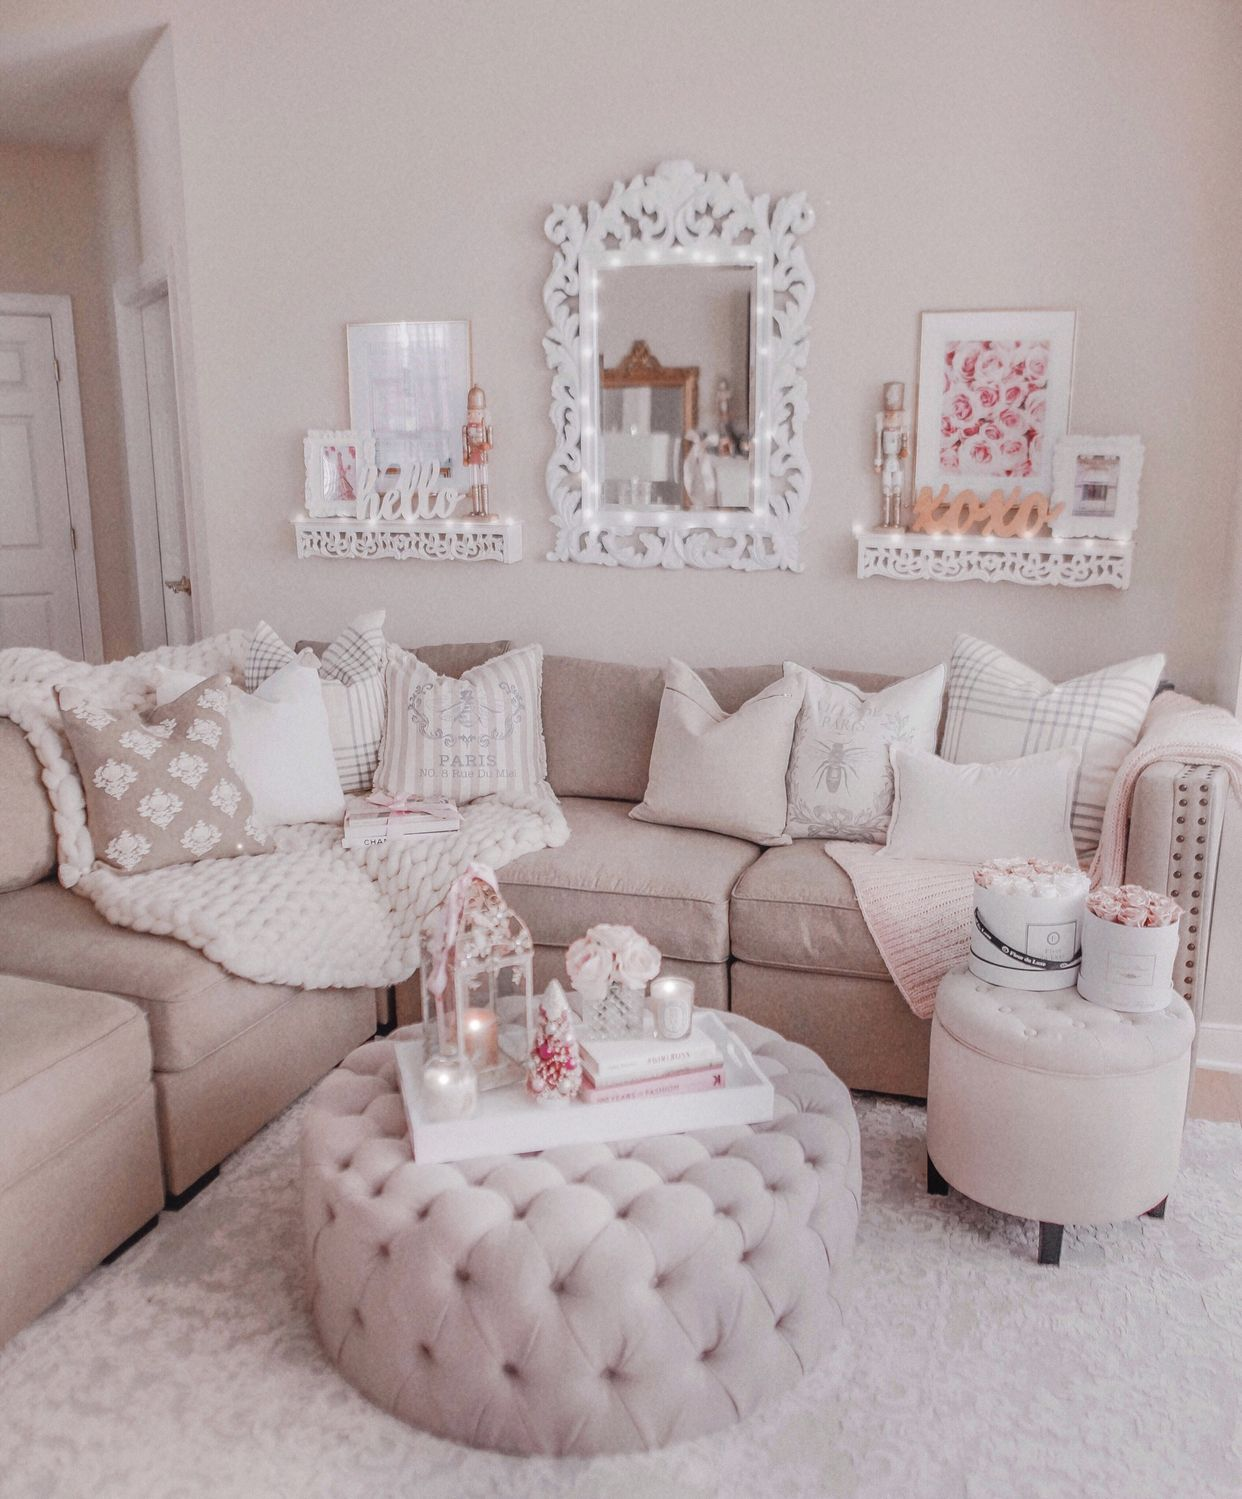 Jadore Lexie Couture Bloglovin Girly Living Room Romantic Living Room Pink Living Room Romantic living room decor